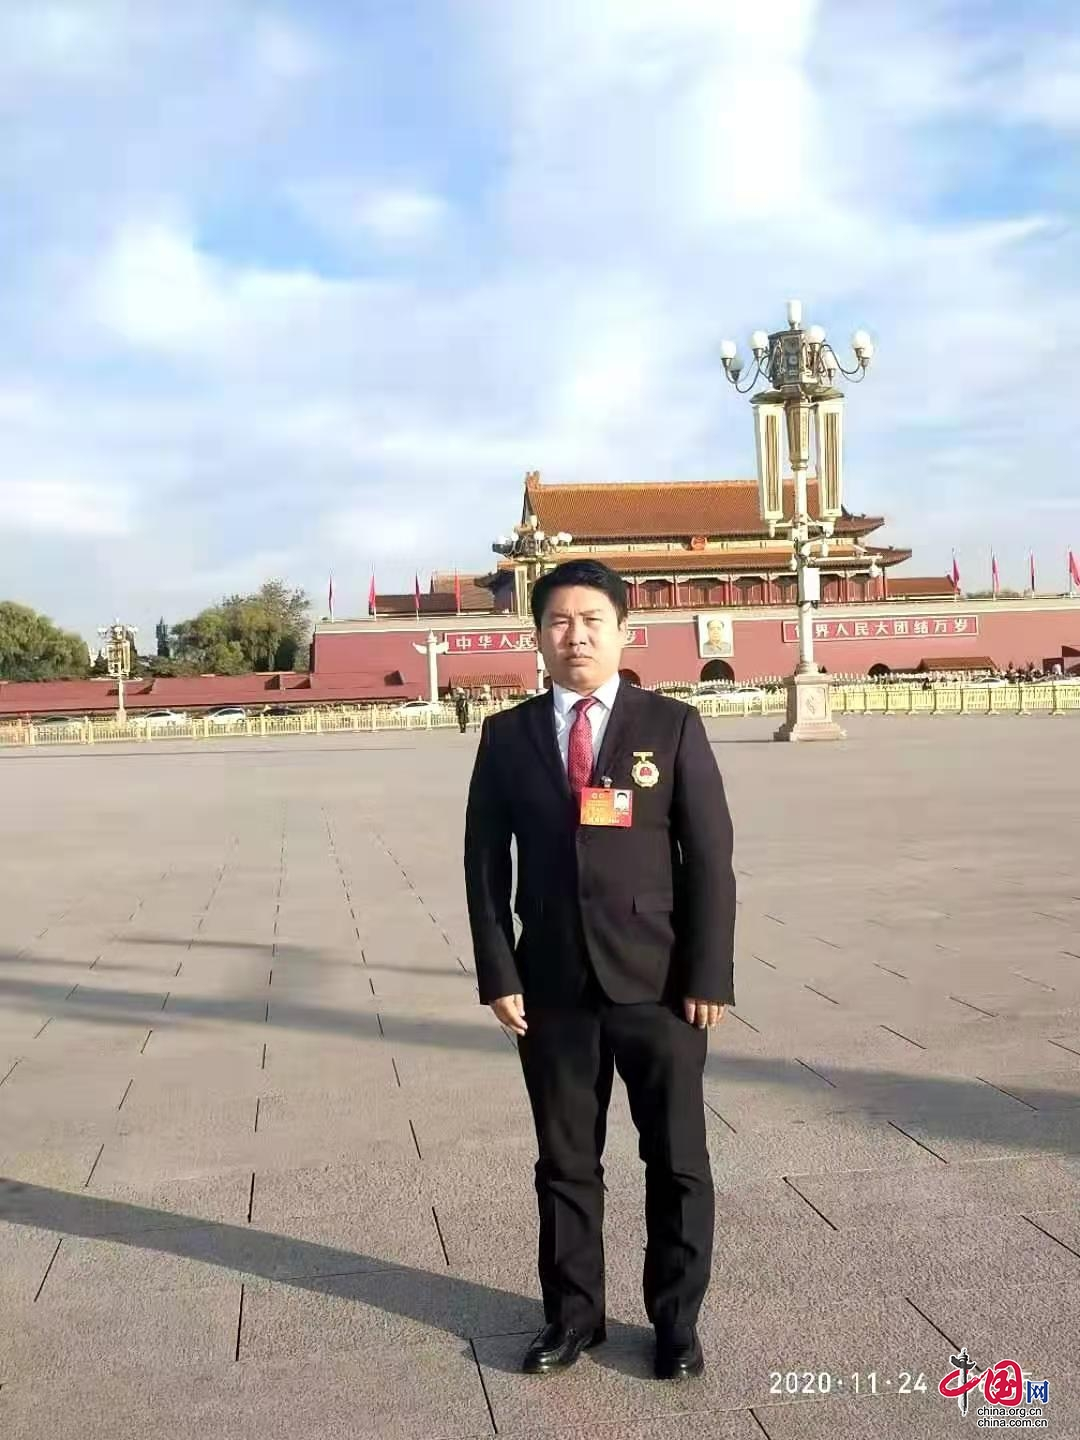 """Cui Qinghong, an employee of Sichuan Energy Investment, wins the award for """"National Model Worker"""""""